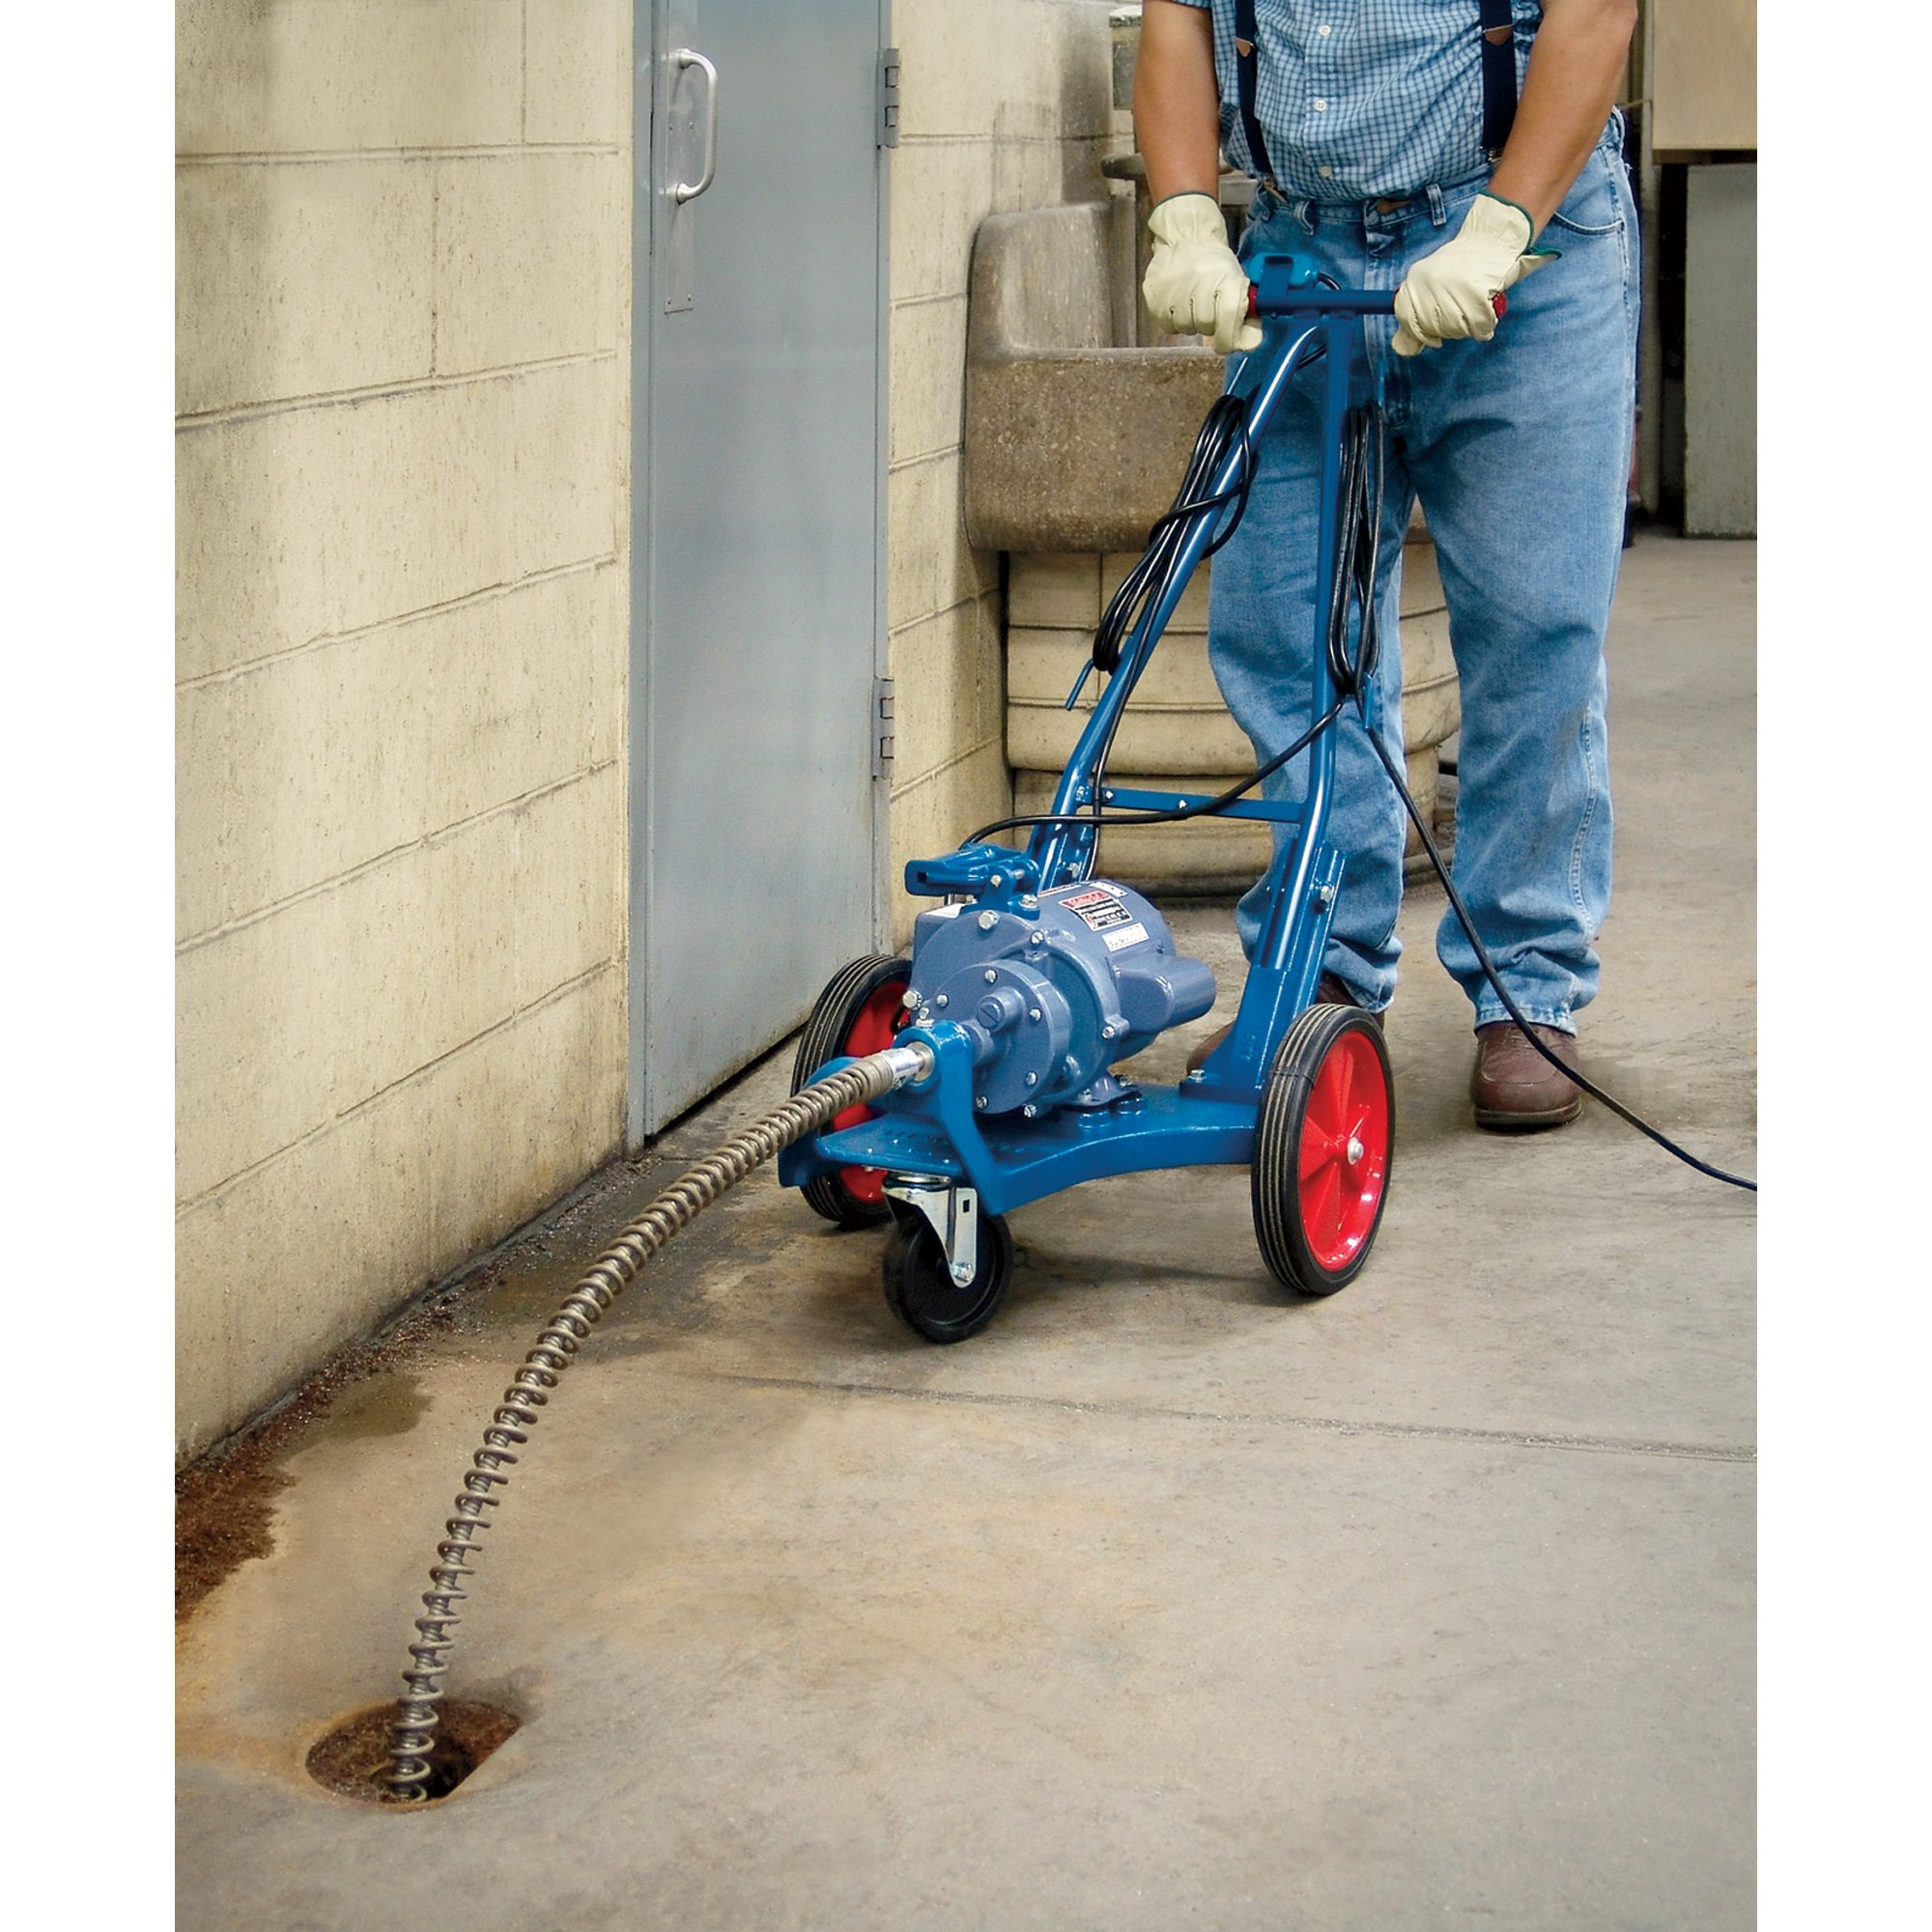 - Electric Eel Sectional Drain Cleaning Machine, Model# CK-1/2-8DC by Electric Eel